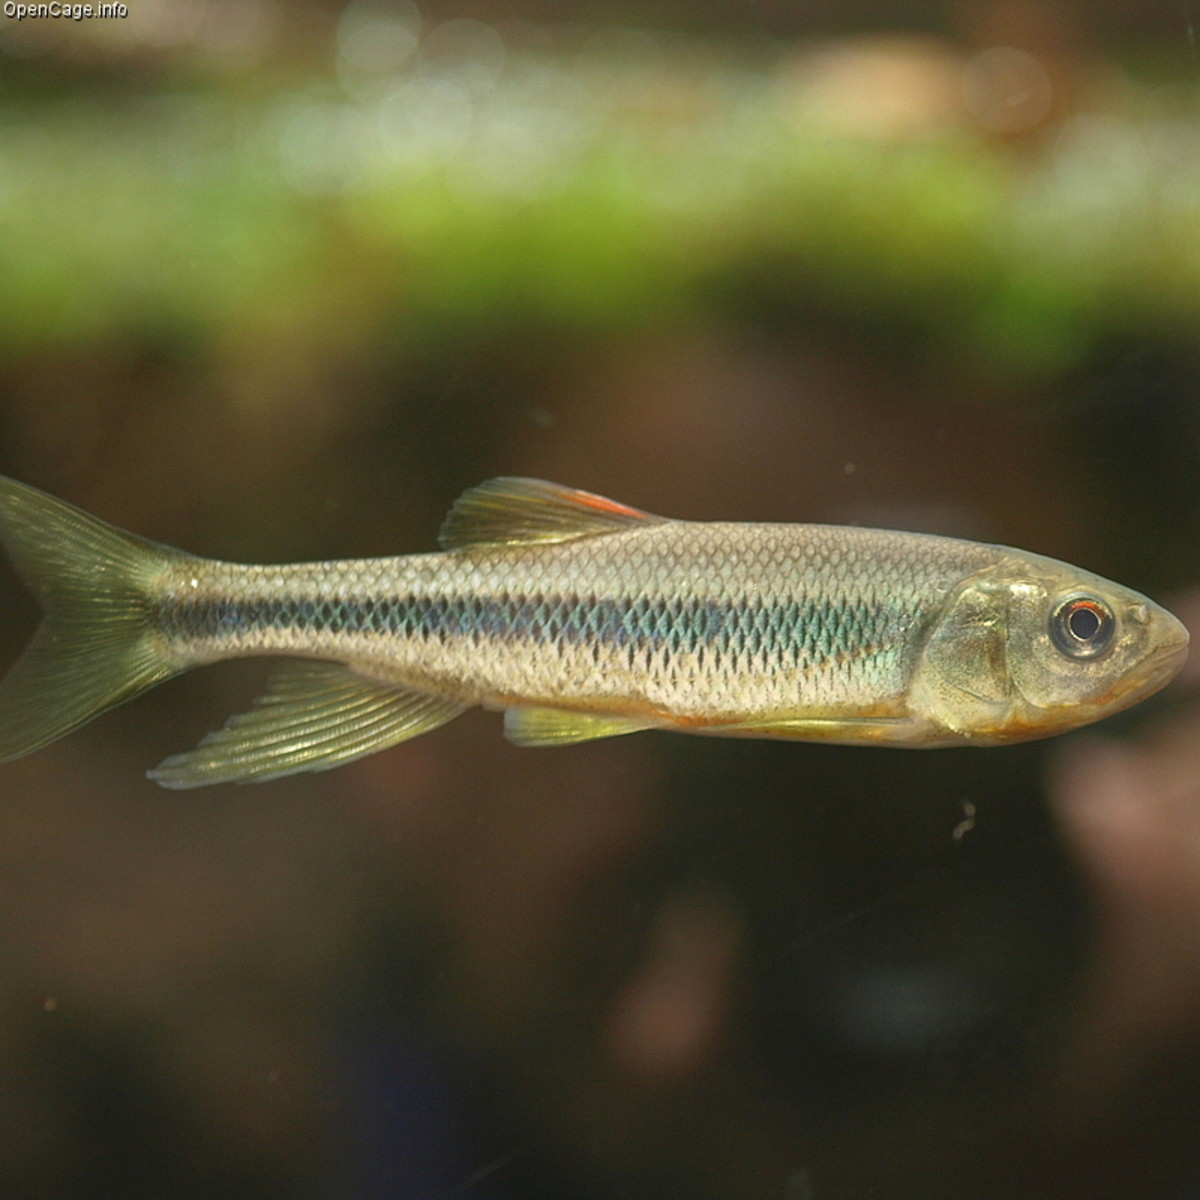 Minnows live in shallow waters by the shore